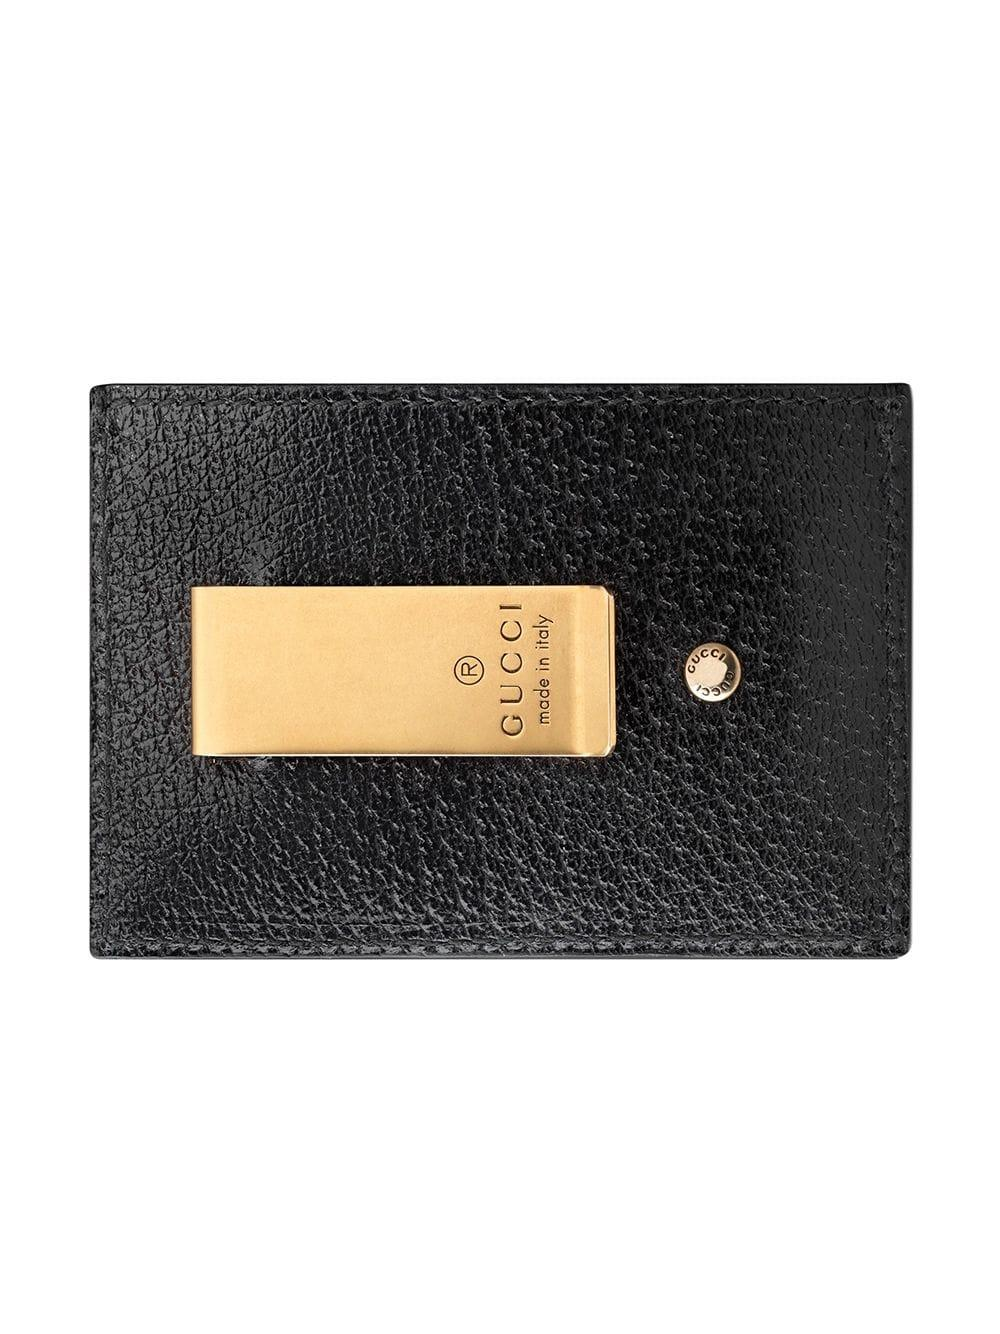 376fdbaa03c47d Gucci Leather Money Clip With Web in Black for Men - Save 6% - Lyst